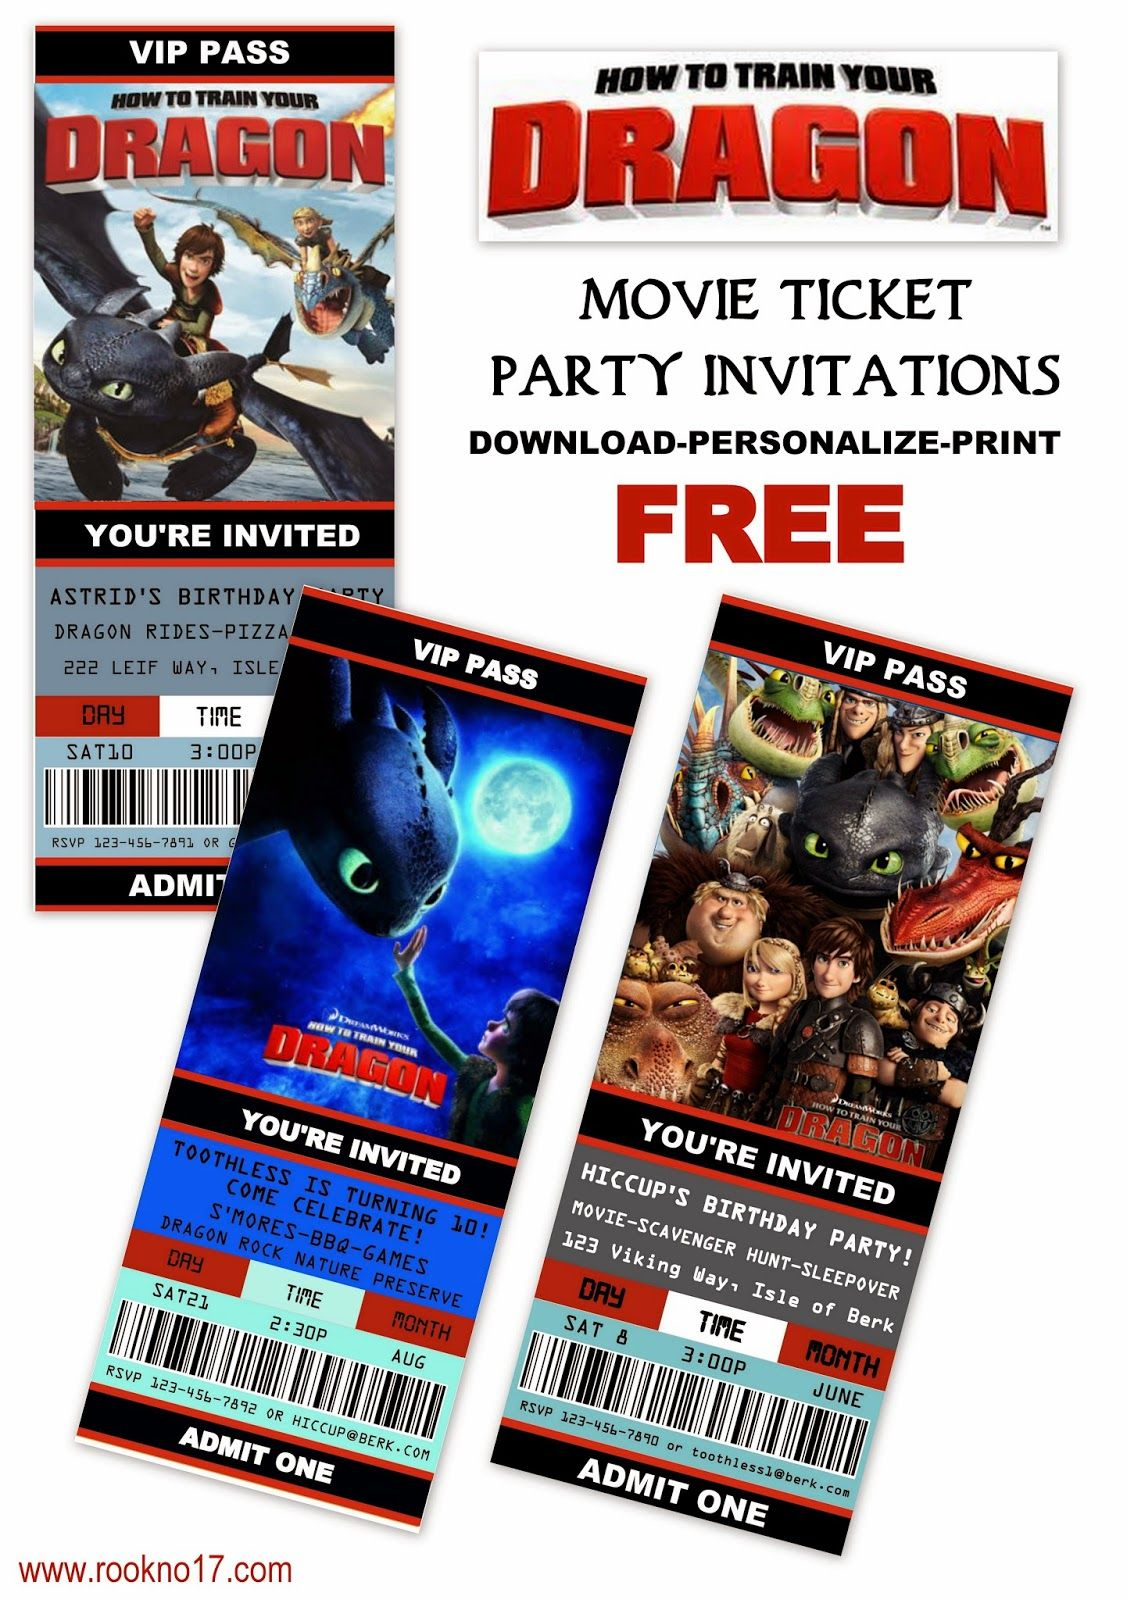 Free Printable Movie Ticket Style Invitations: How To Train Your - How To Train Your Dragon Birthday Invitations Printable Free